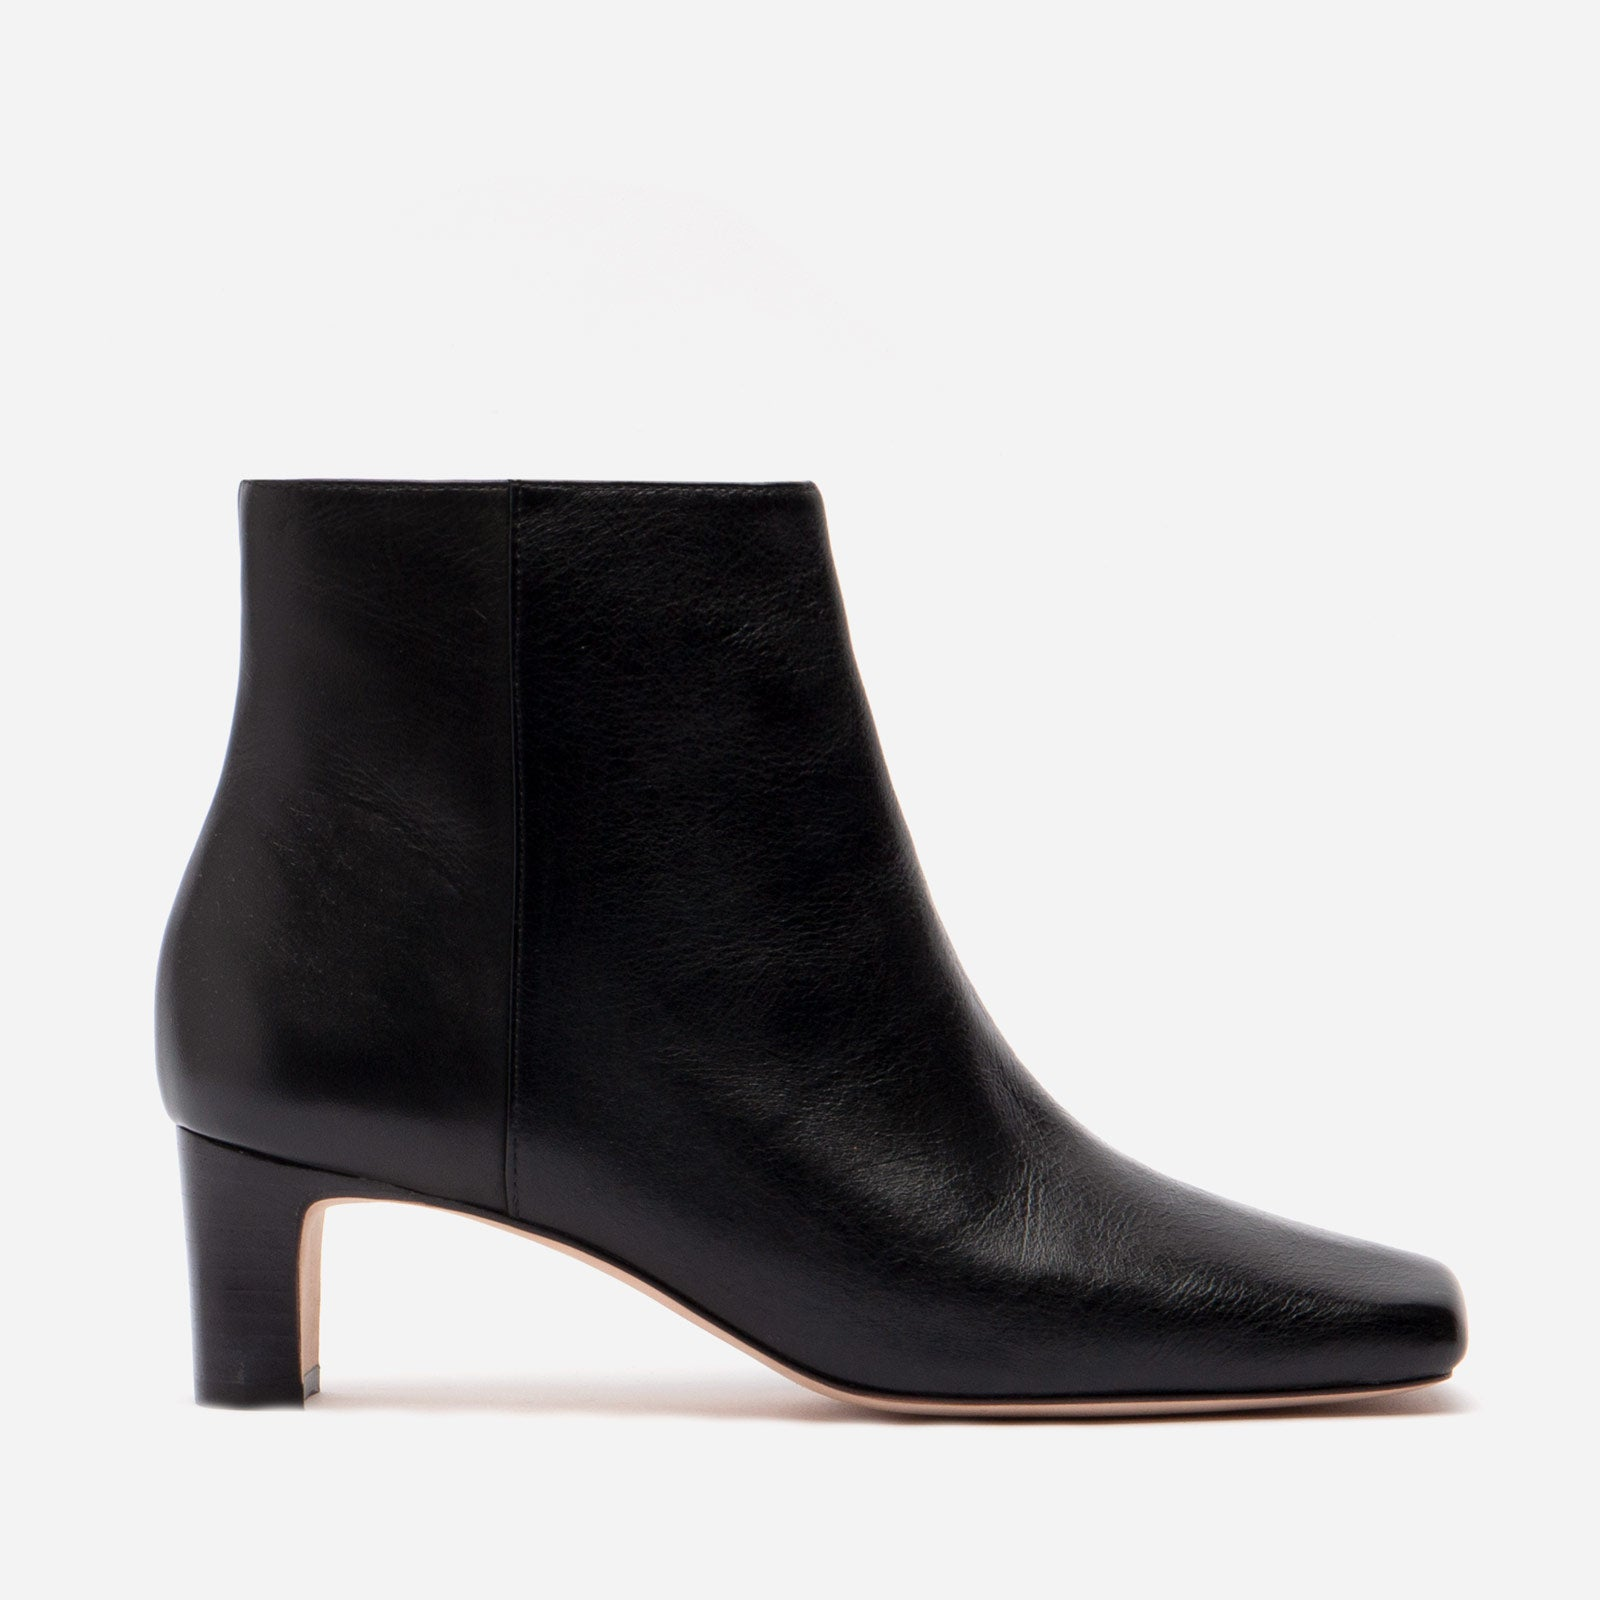 Eleanor Boot Naplak Black - Frances Valentine